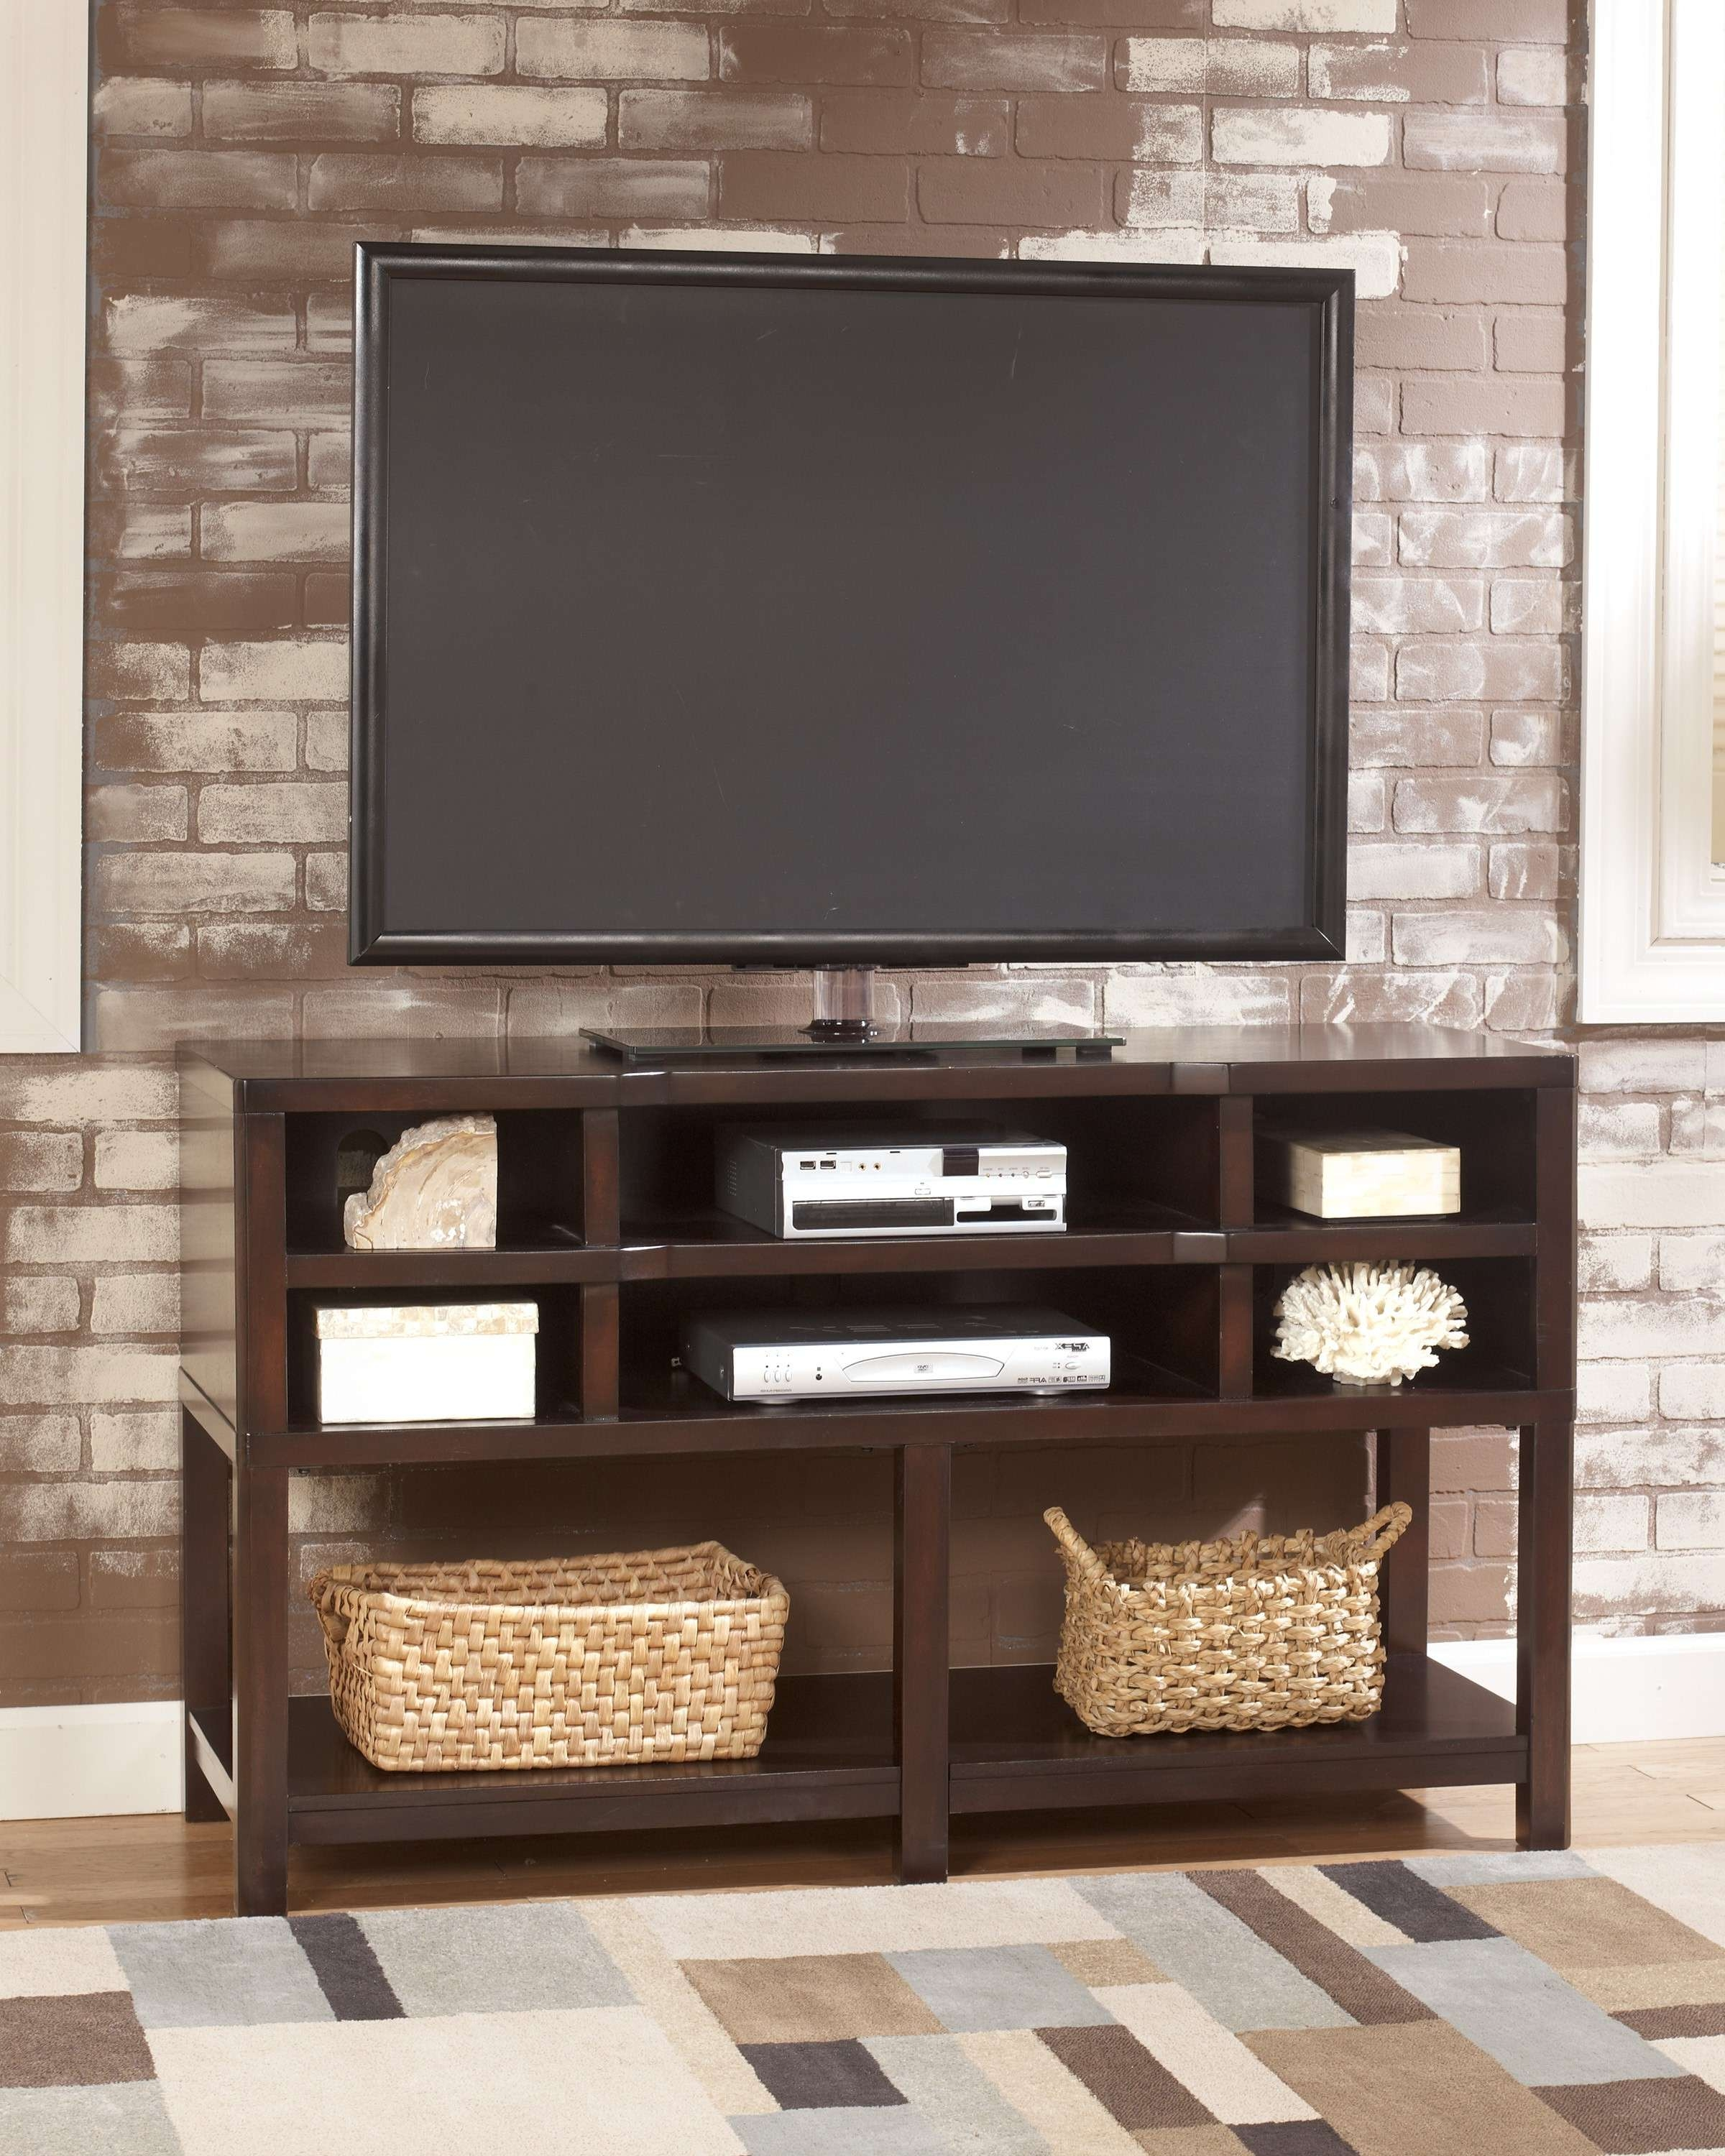 Simple Modern Oak Flat Screen Tv Stand Console Table With With Regard To Modern Tv Cabinets For Flat Screens (View 10 of 20)